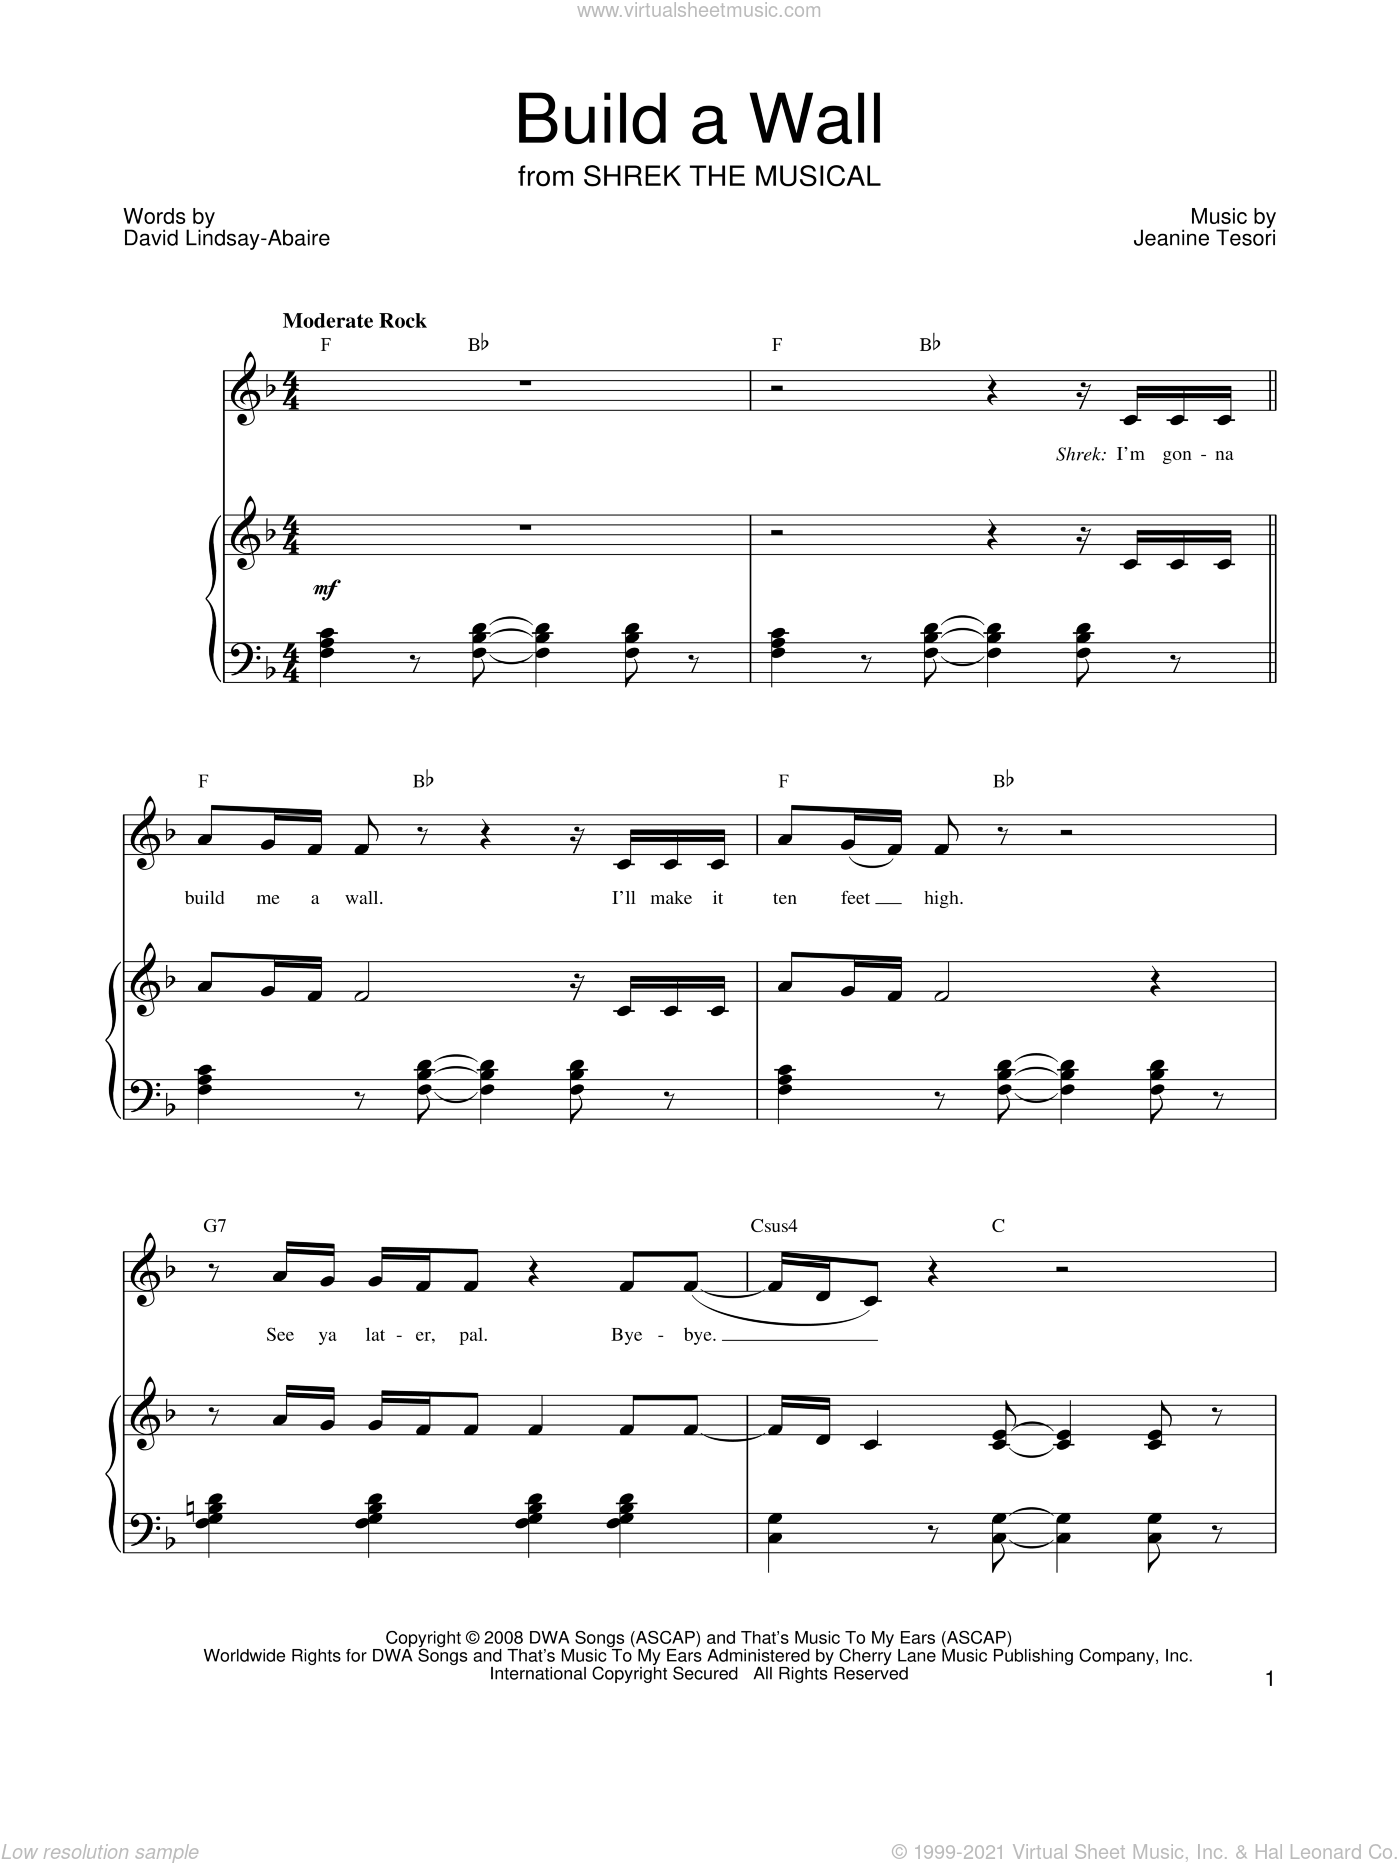 Build A Wall sheet music for voice, piano or guitar by Shrek The Musical, David Lindsay-Abaire and Jeanine Tesori, intermediate skill level